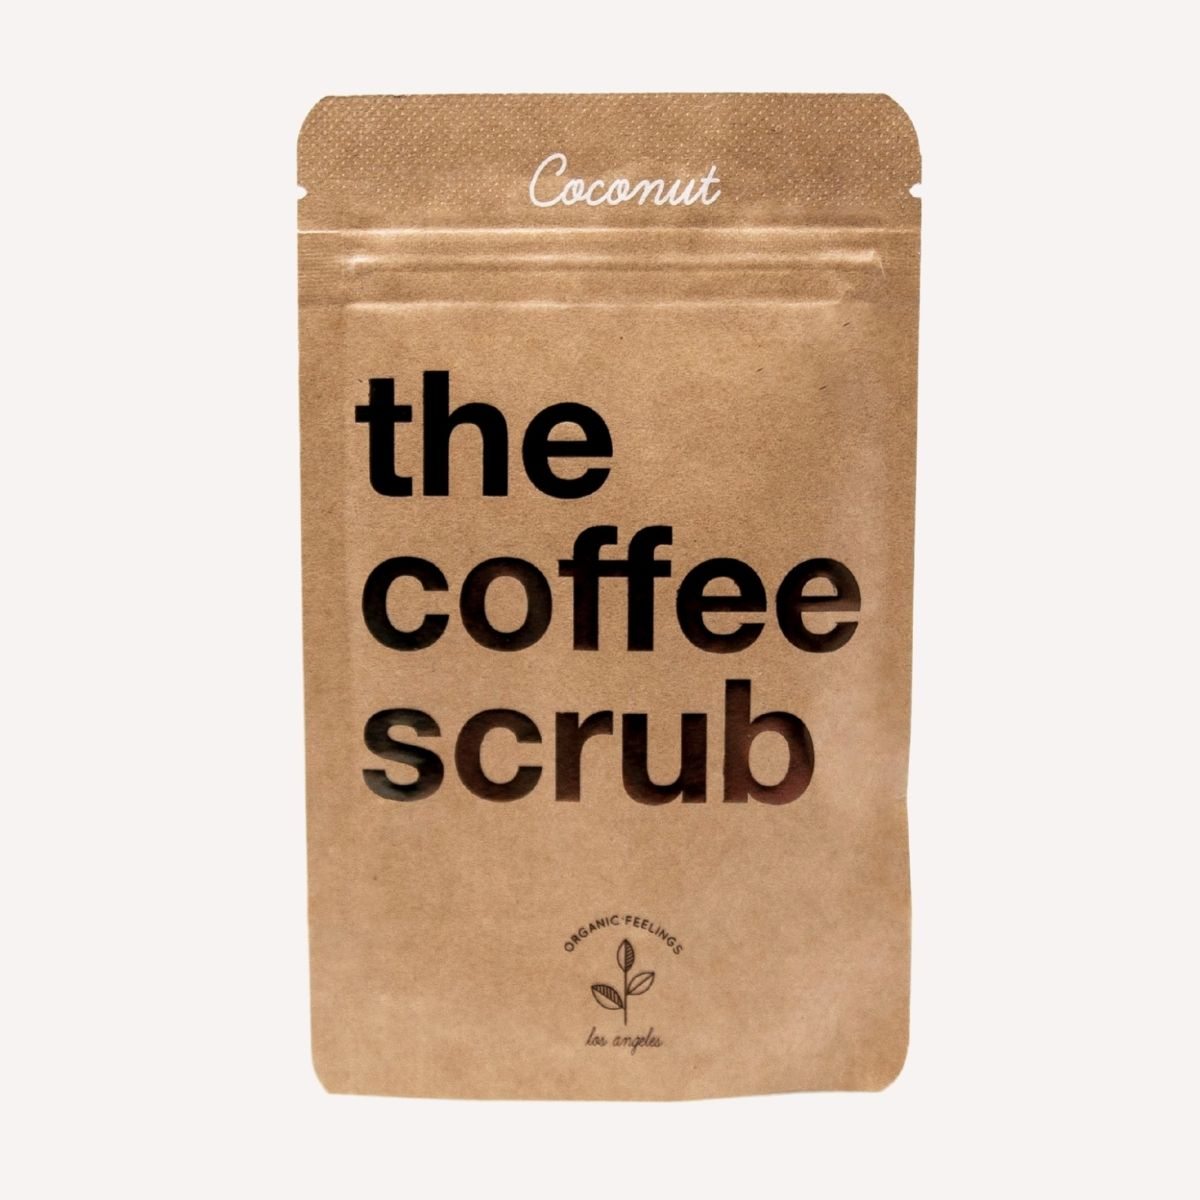 Coconut Coffee Scrub (50g) - The Coffee Scrub